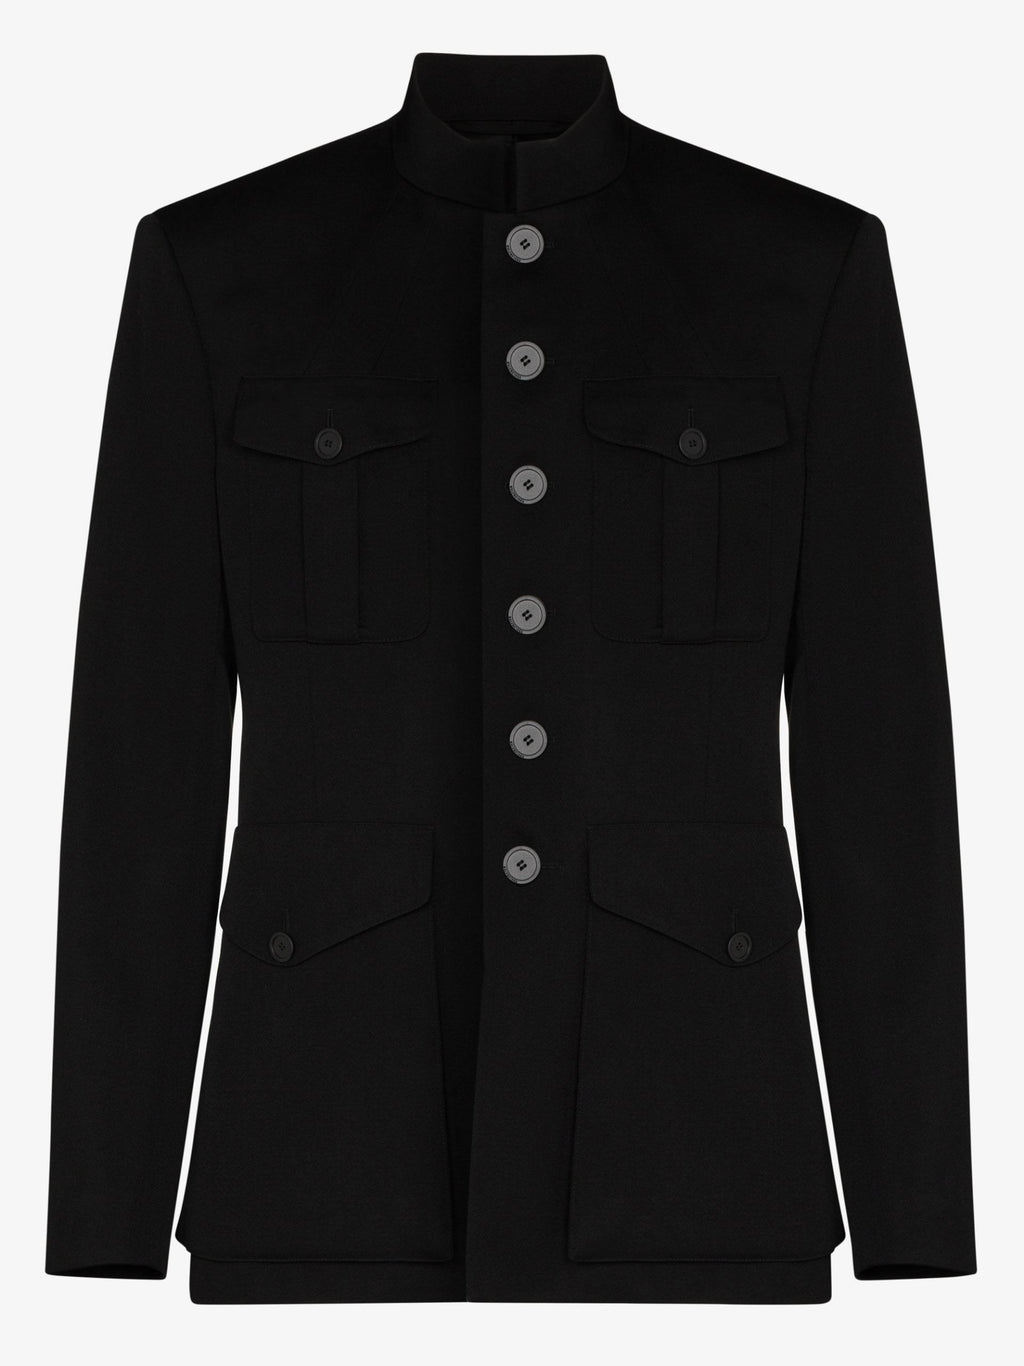 BALENCIAGA Buttoned Military-Inspired Jacket Black